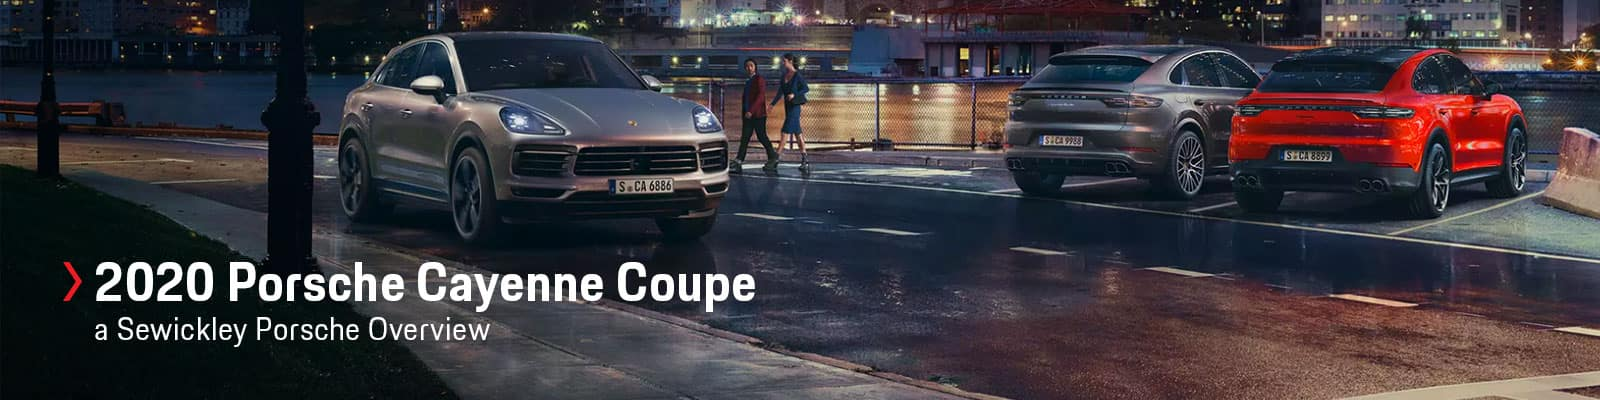 2020 Porsche Cayenne Coupe Model Overview at Sewickley Porsche